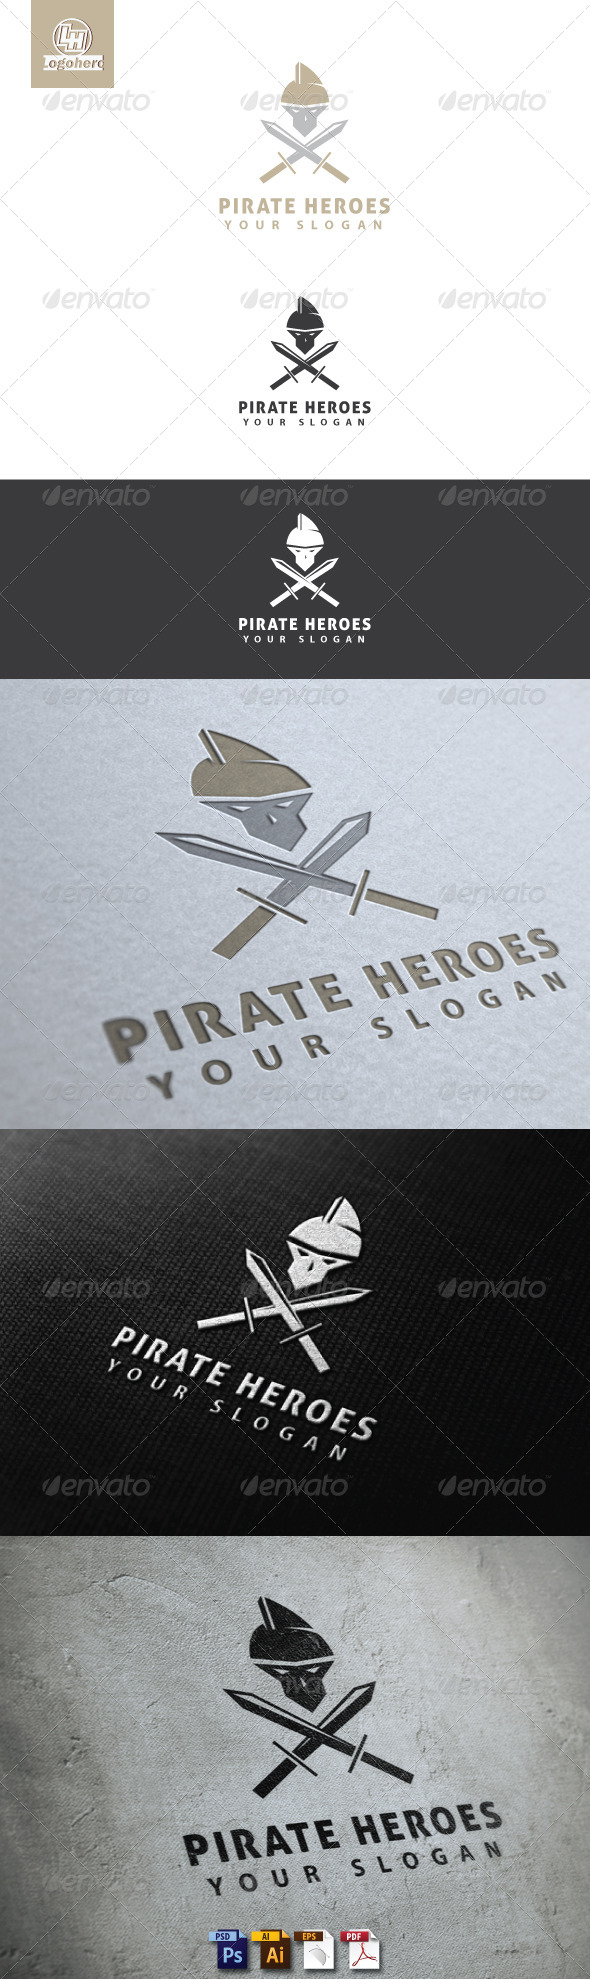 GraphicRiver Pirate Heroes Logo Template 4701044